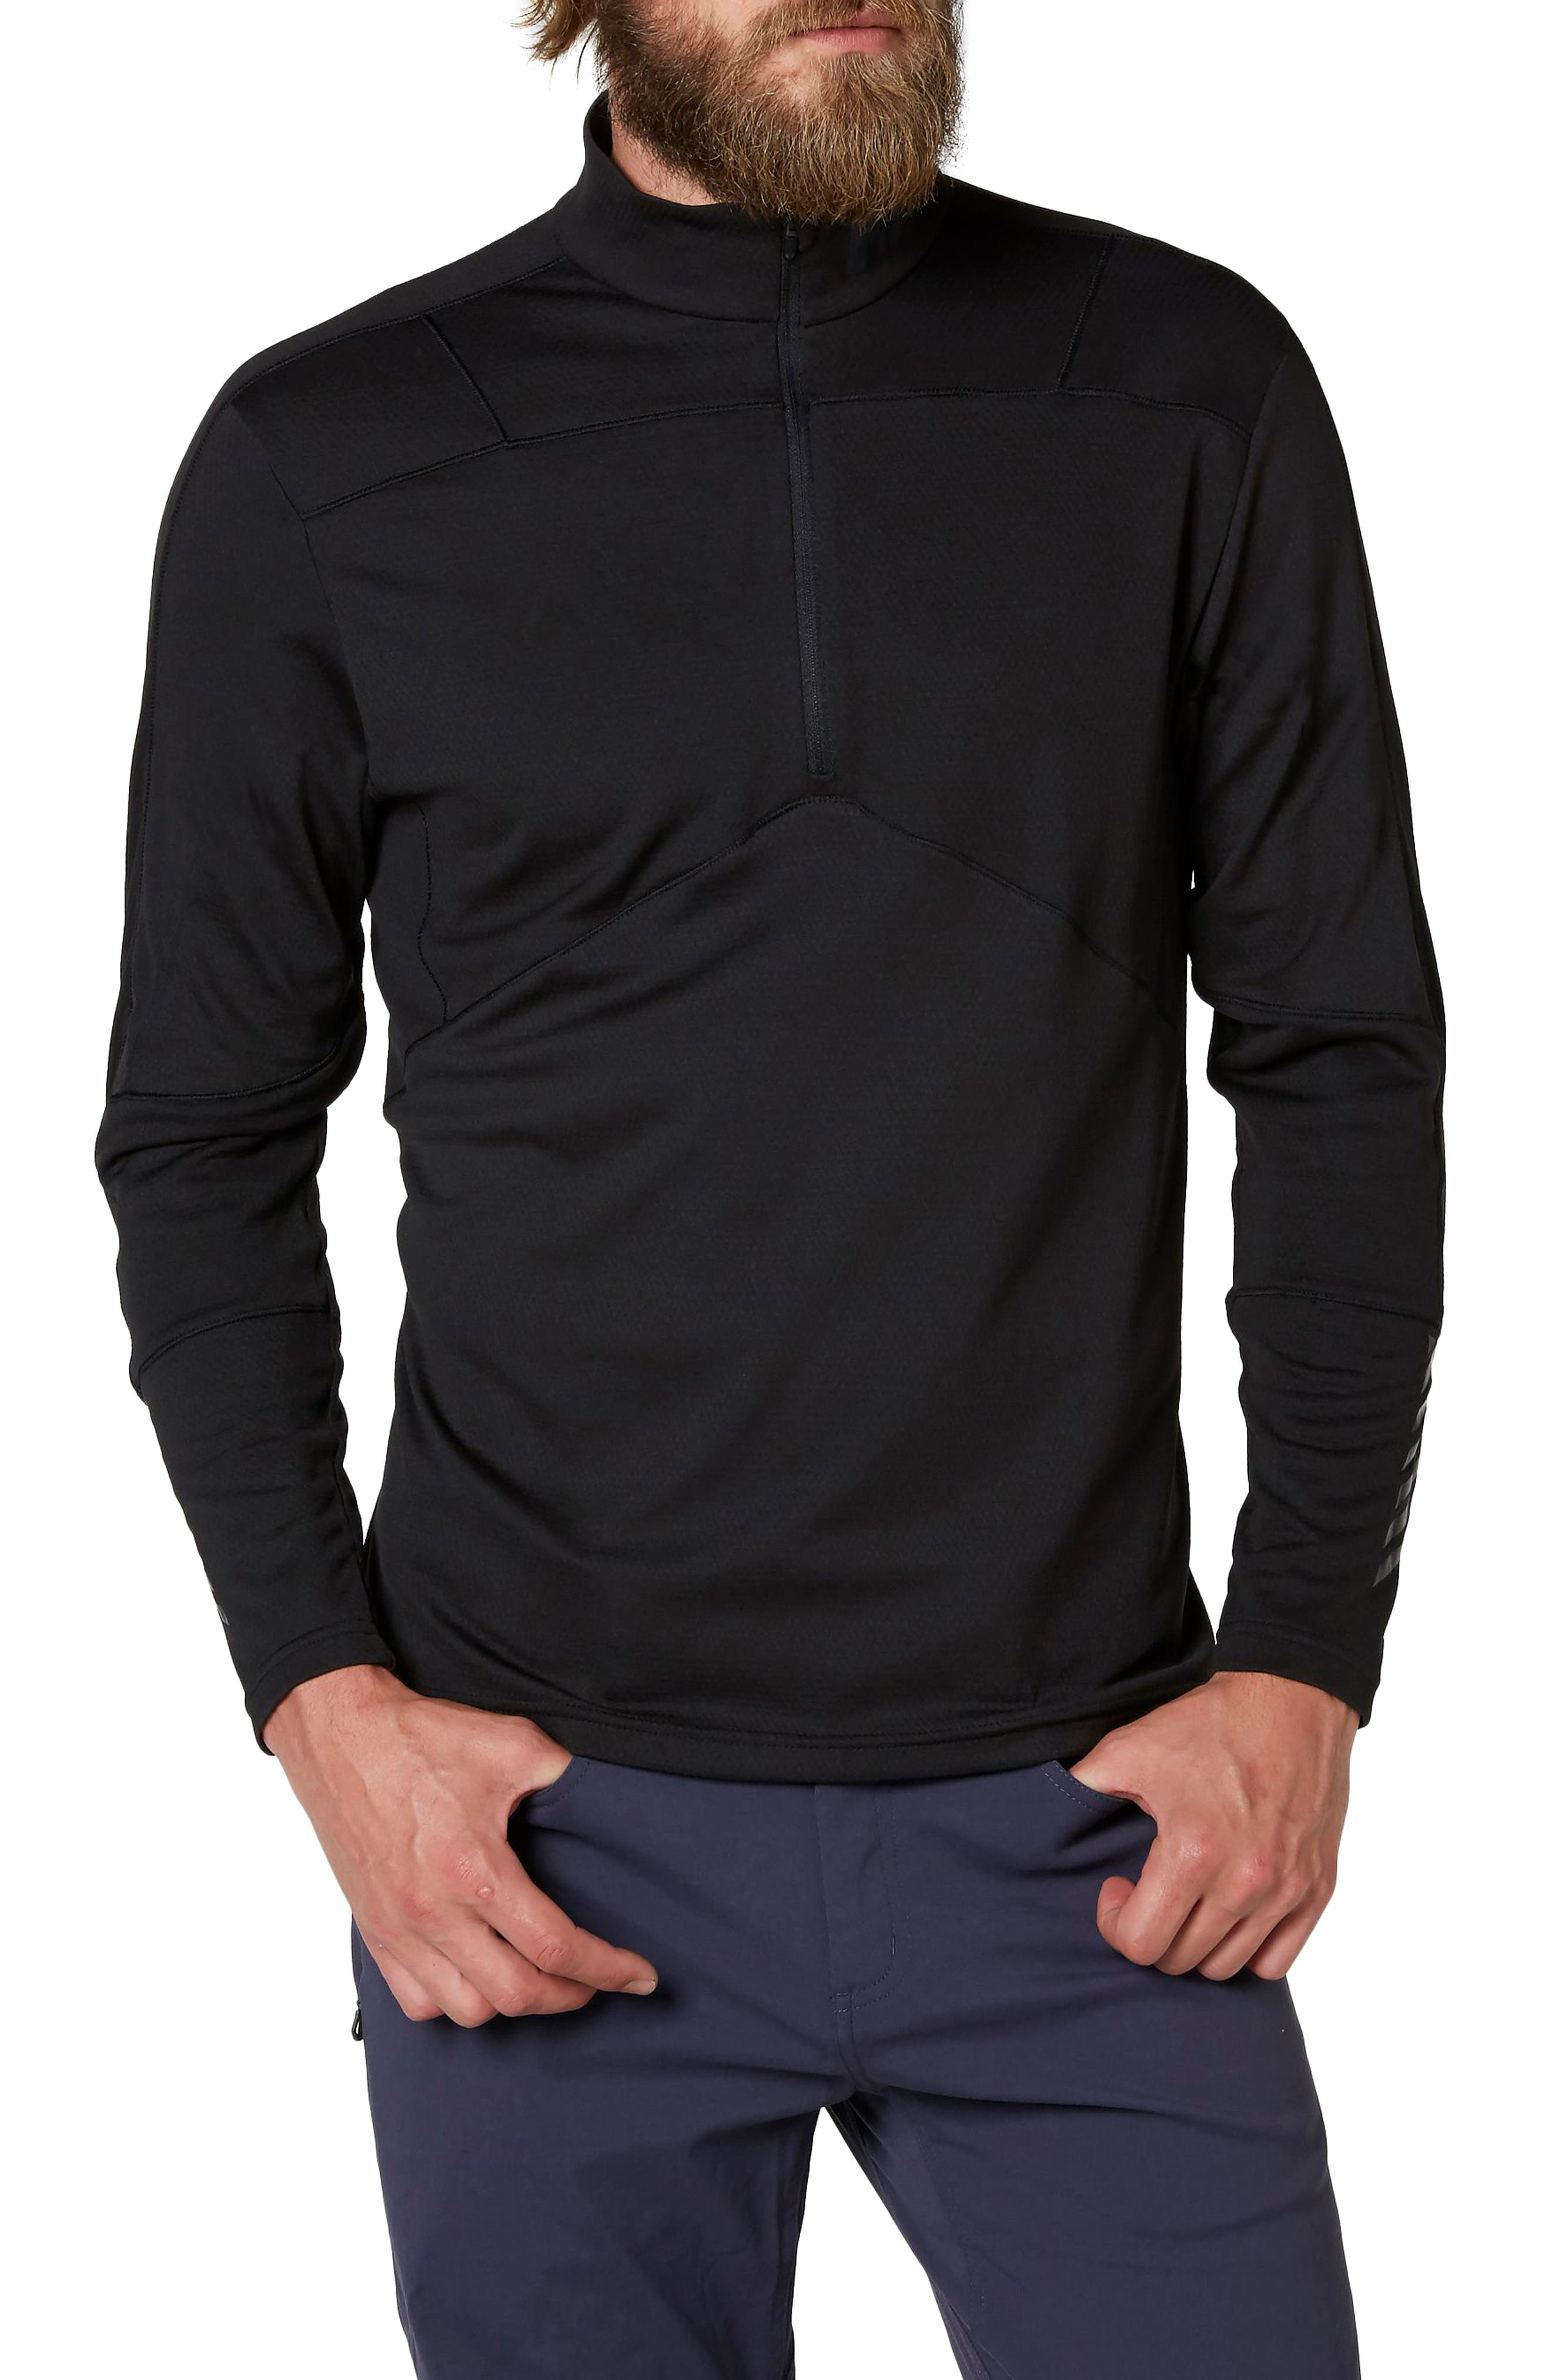 Alternate Image 1 Selected - Helly Hansen HH® Lifa Quarter Zip Pullover